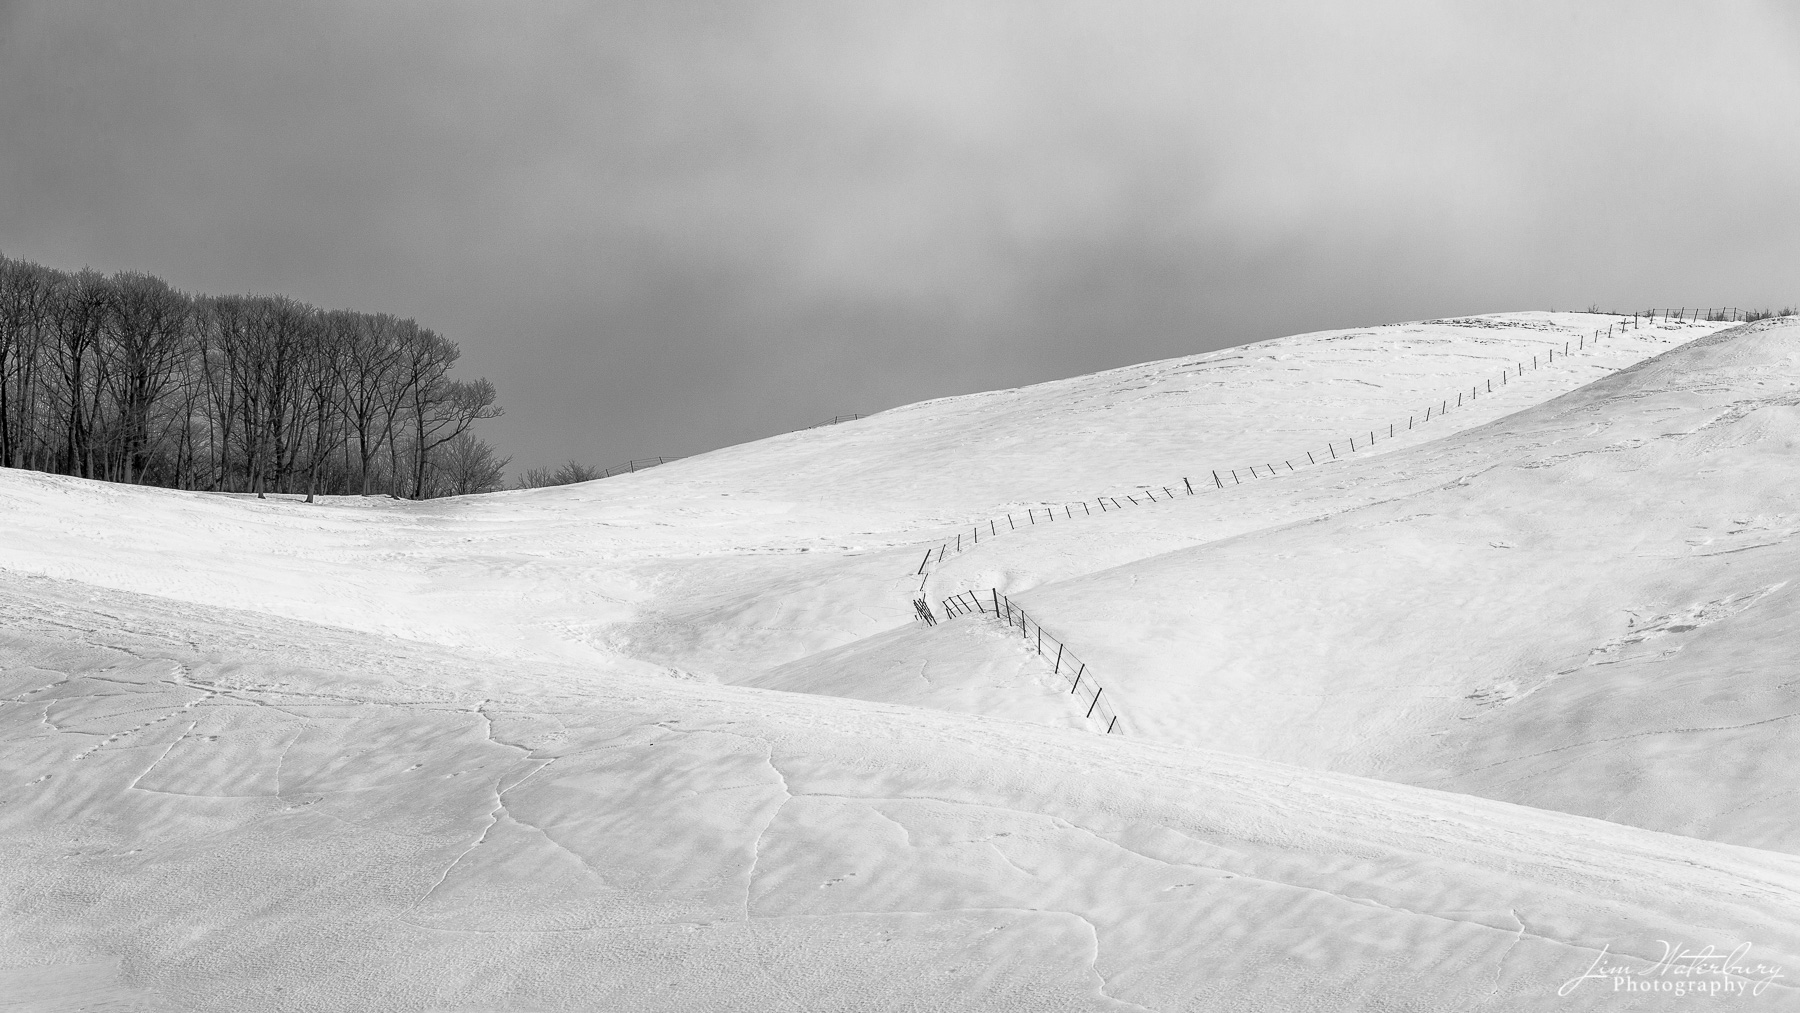 Black & white image of a stand of trees on top of a snow-covered hill, with a fence dividing it, and a moody sky above.  Hokkaido...